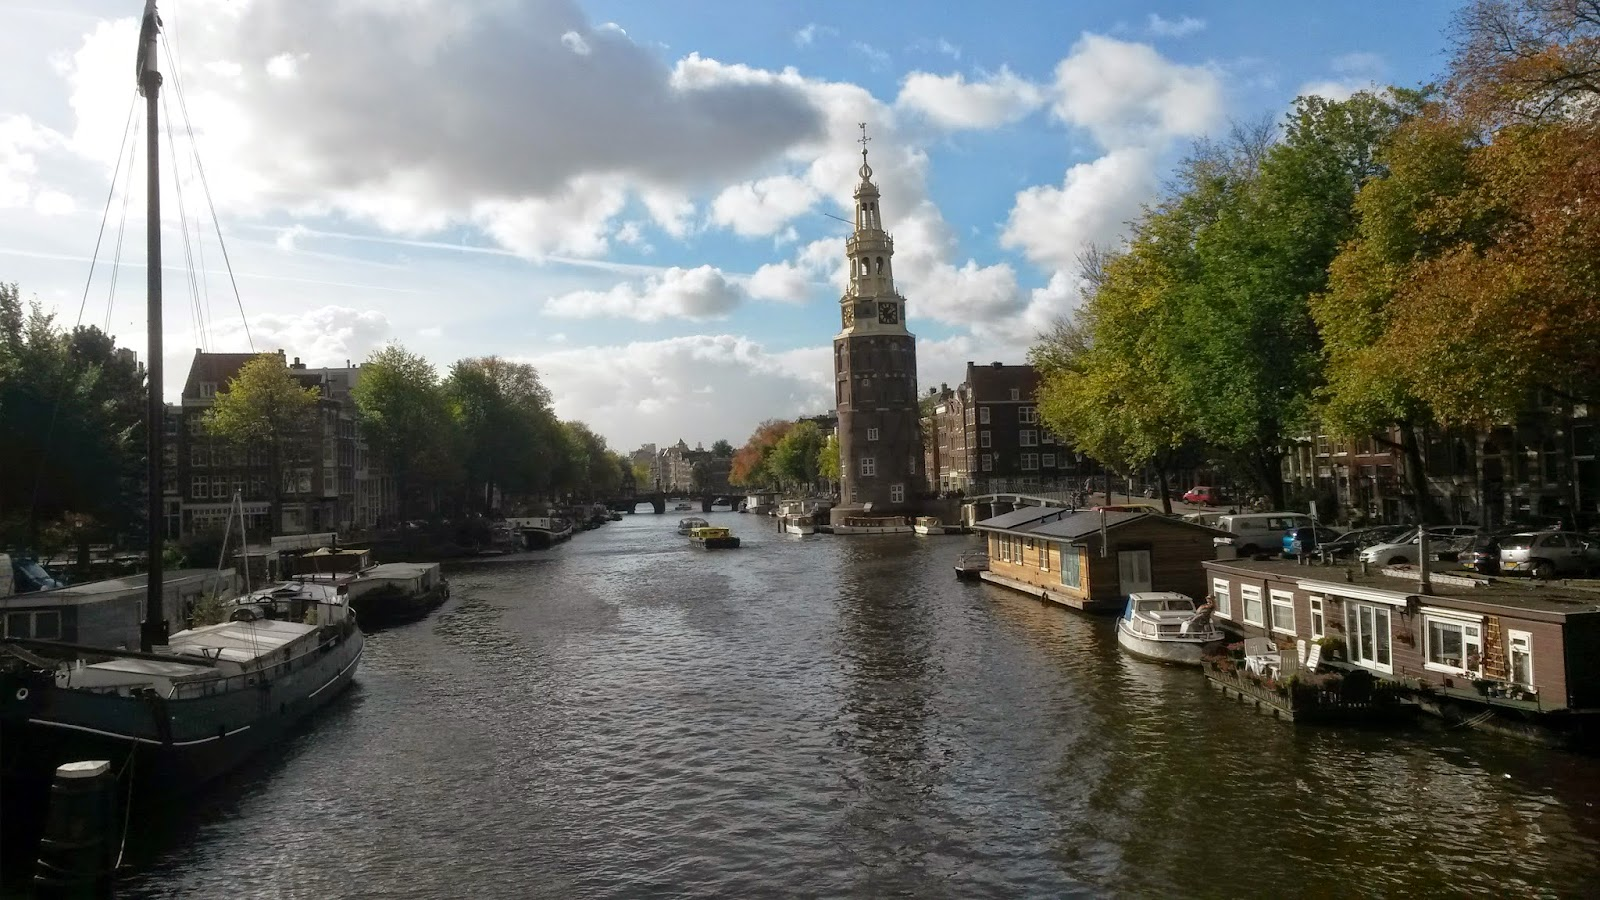 Looking for cheap accommodation in Amsterdam? Take advantage of the value deals